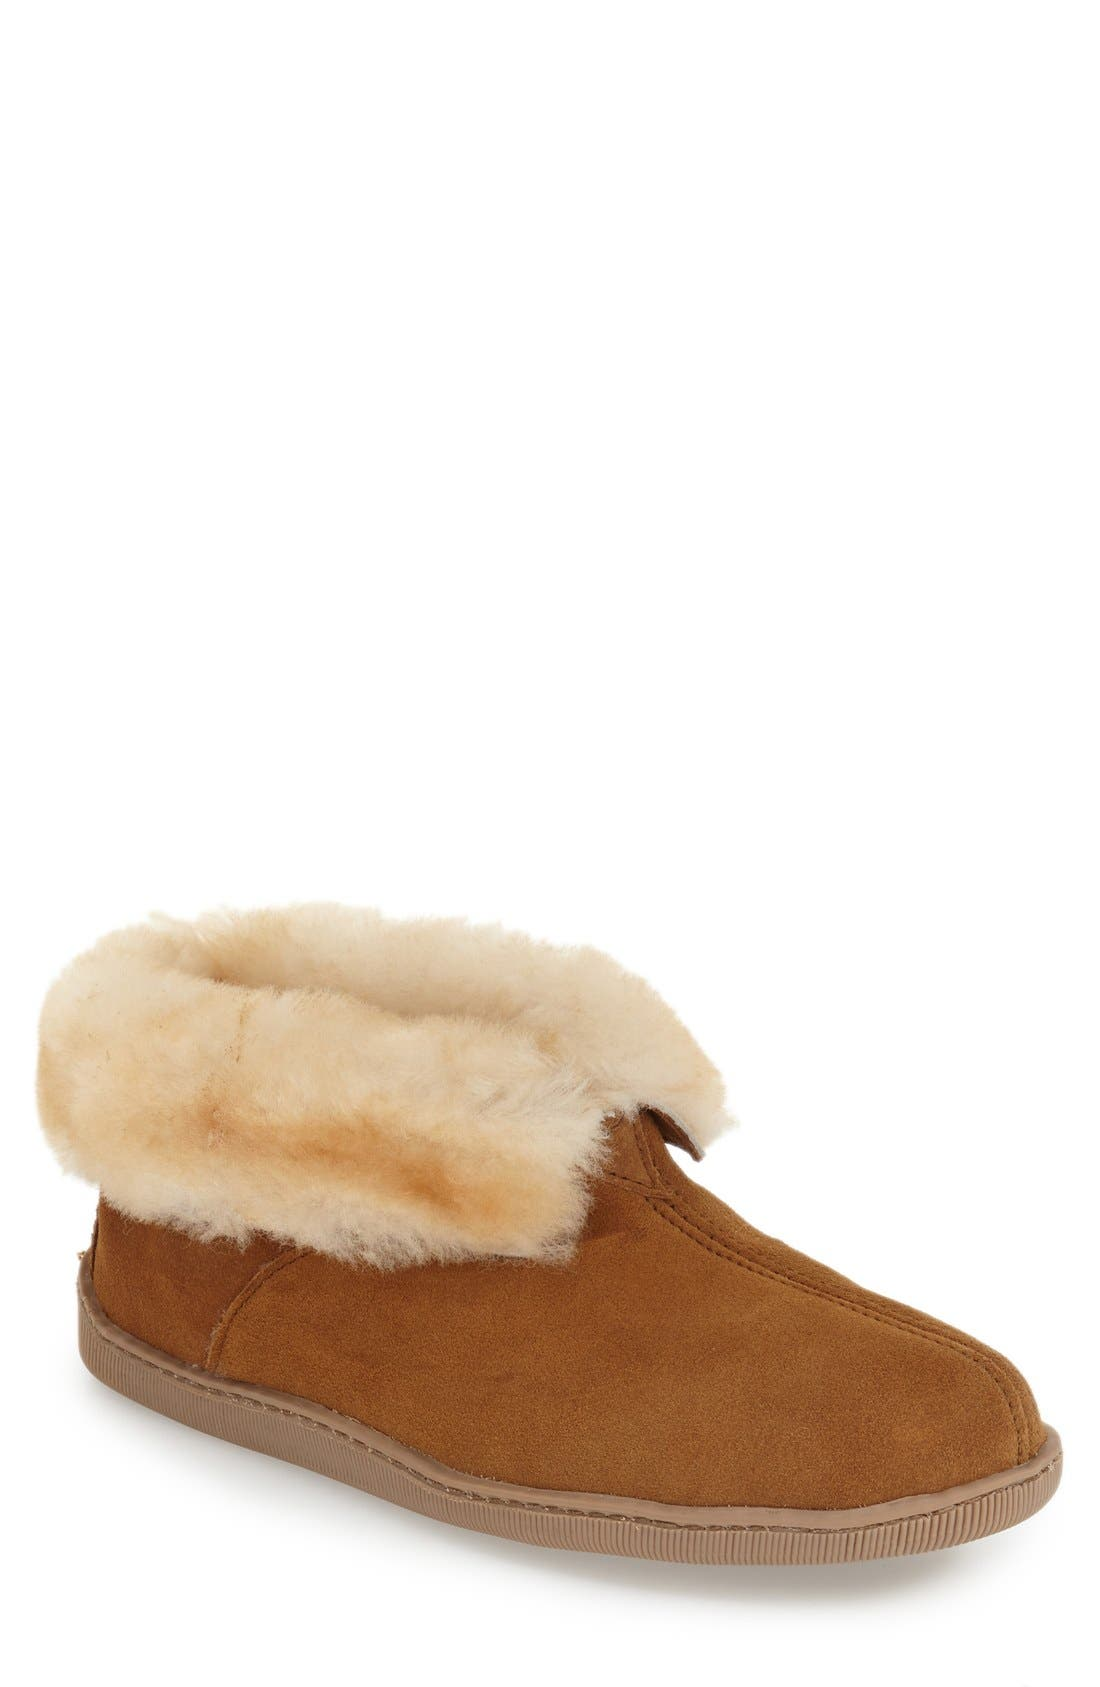 MINNETONKA Genuine Shearling Lined Ankle Boot